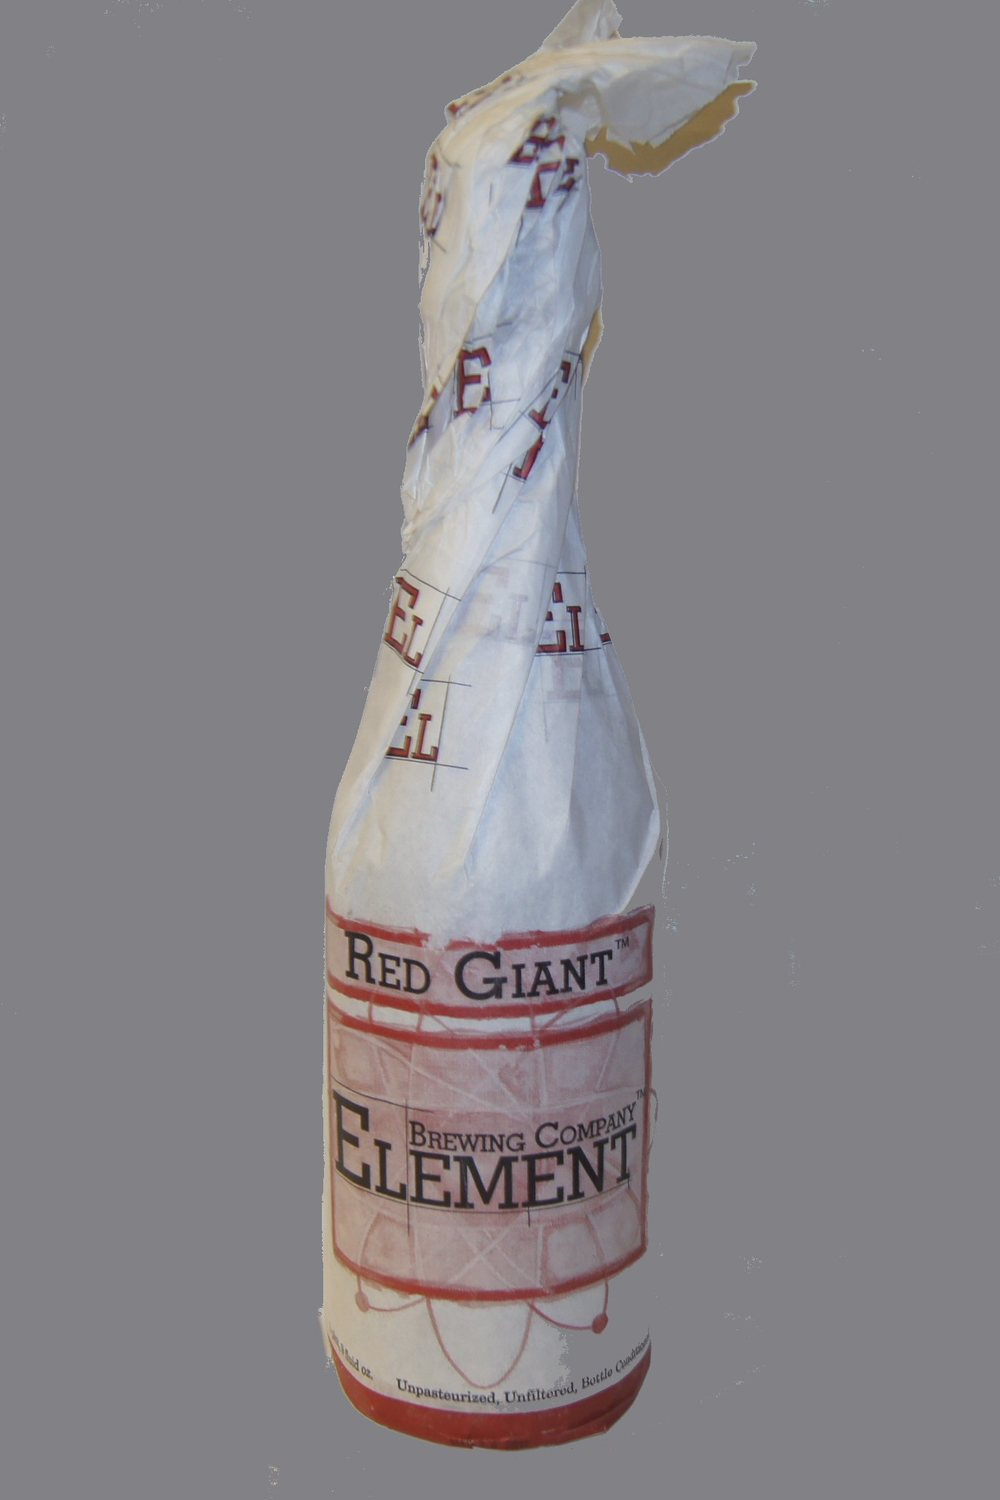 ELEMENT BREWING COMPANY-Red Giant.jpg